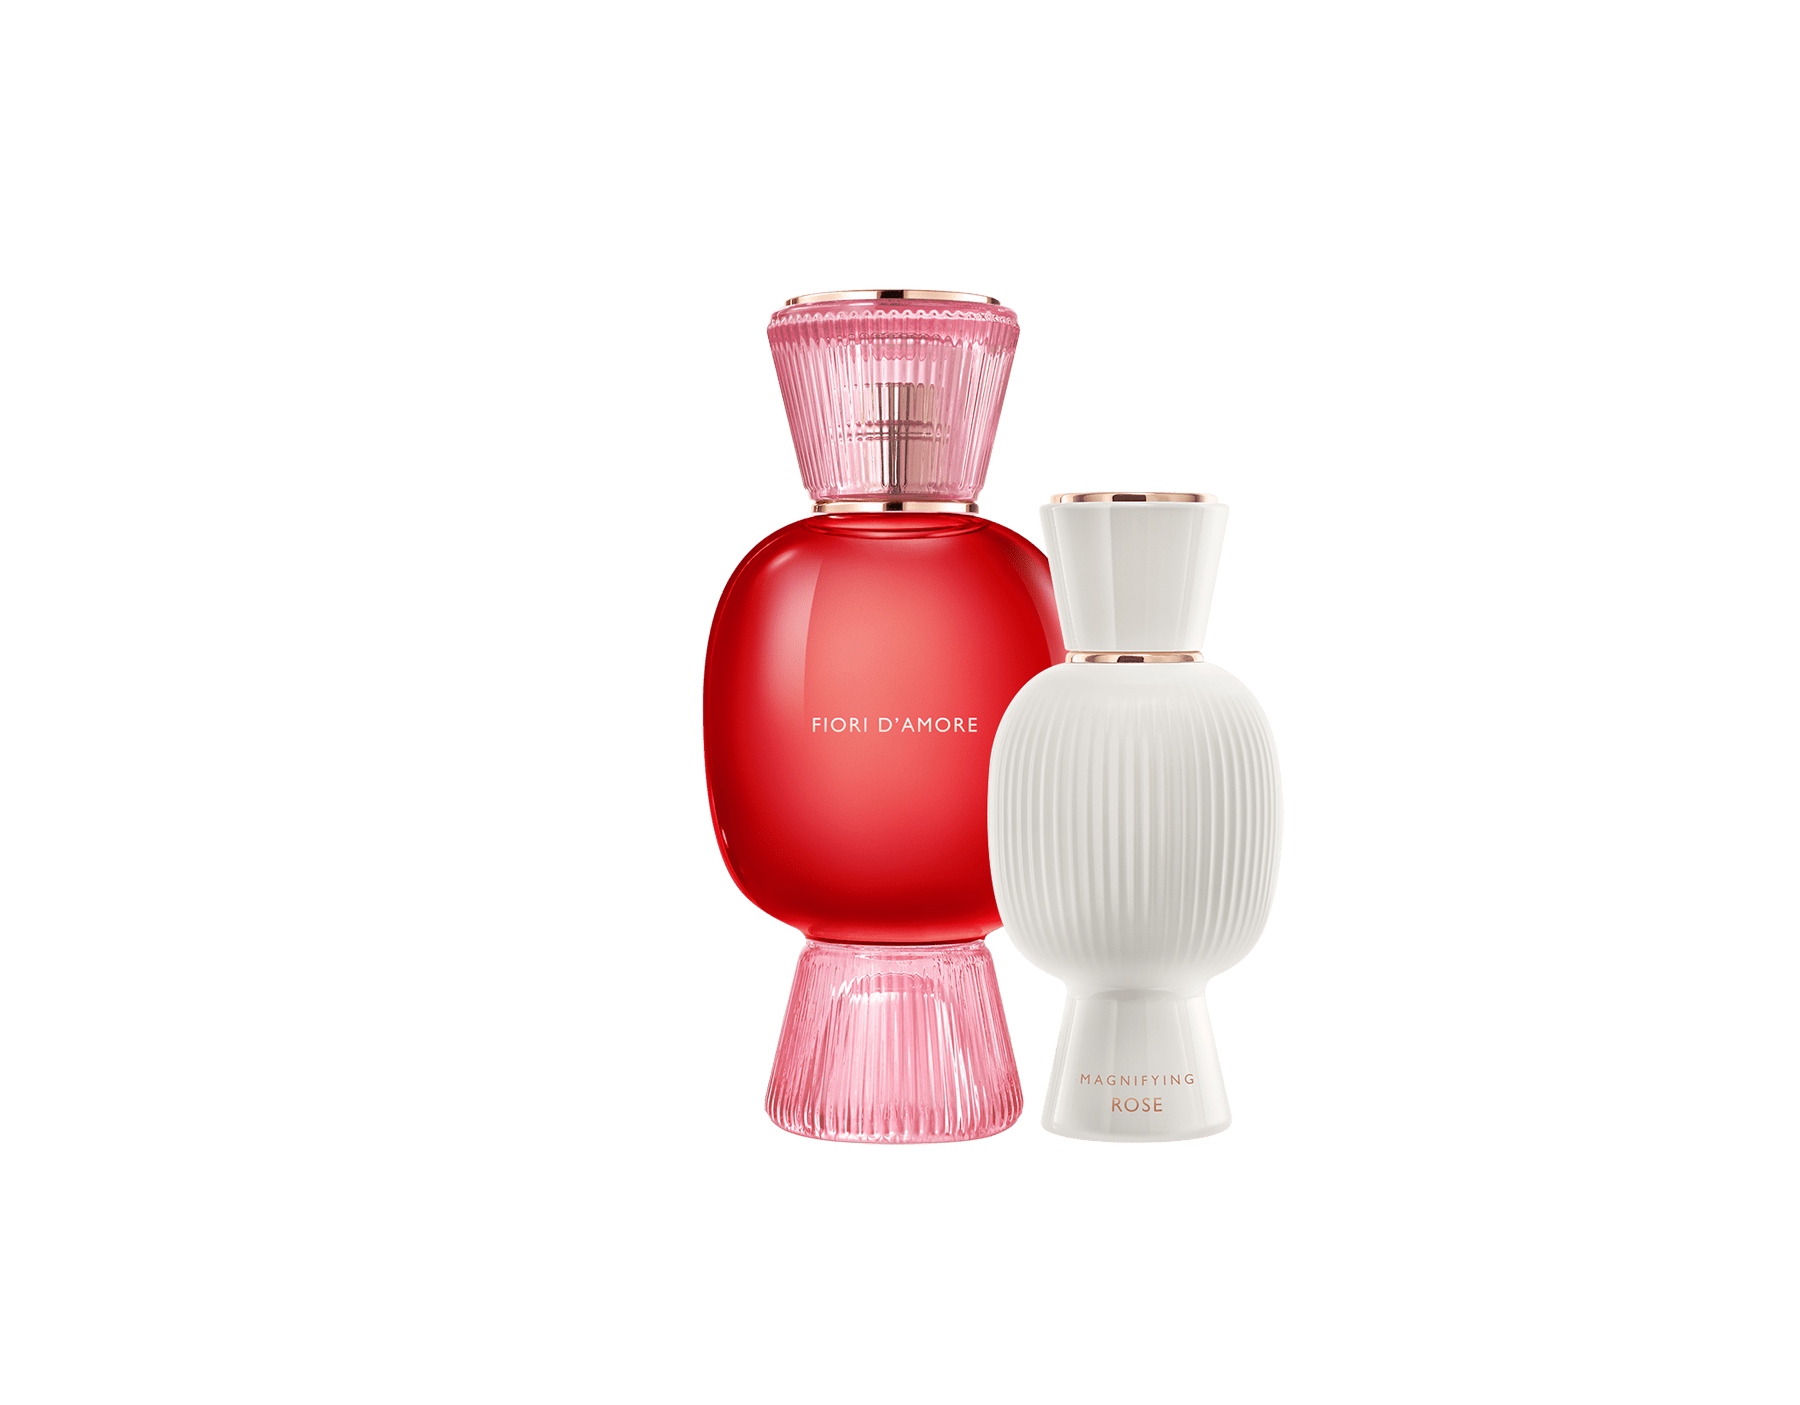 An exclusive perfume set, as bold and unique as you. The magnificent floral Fiori d'Amore Allegra Eau de Parfum blends with the voluptuous intensity of the Magnifying Rose Essence, creating an irresistible personalised women's perfume. Perfume-Set-Fiori-d-Amore-Eau-de-Parfum-and-Rose-Magnifying image 1